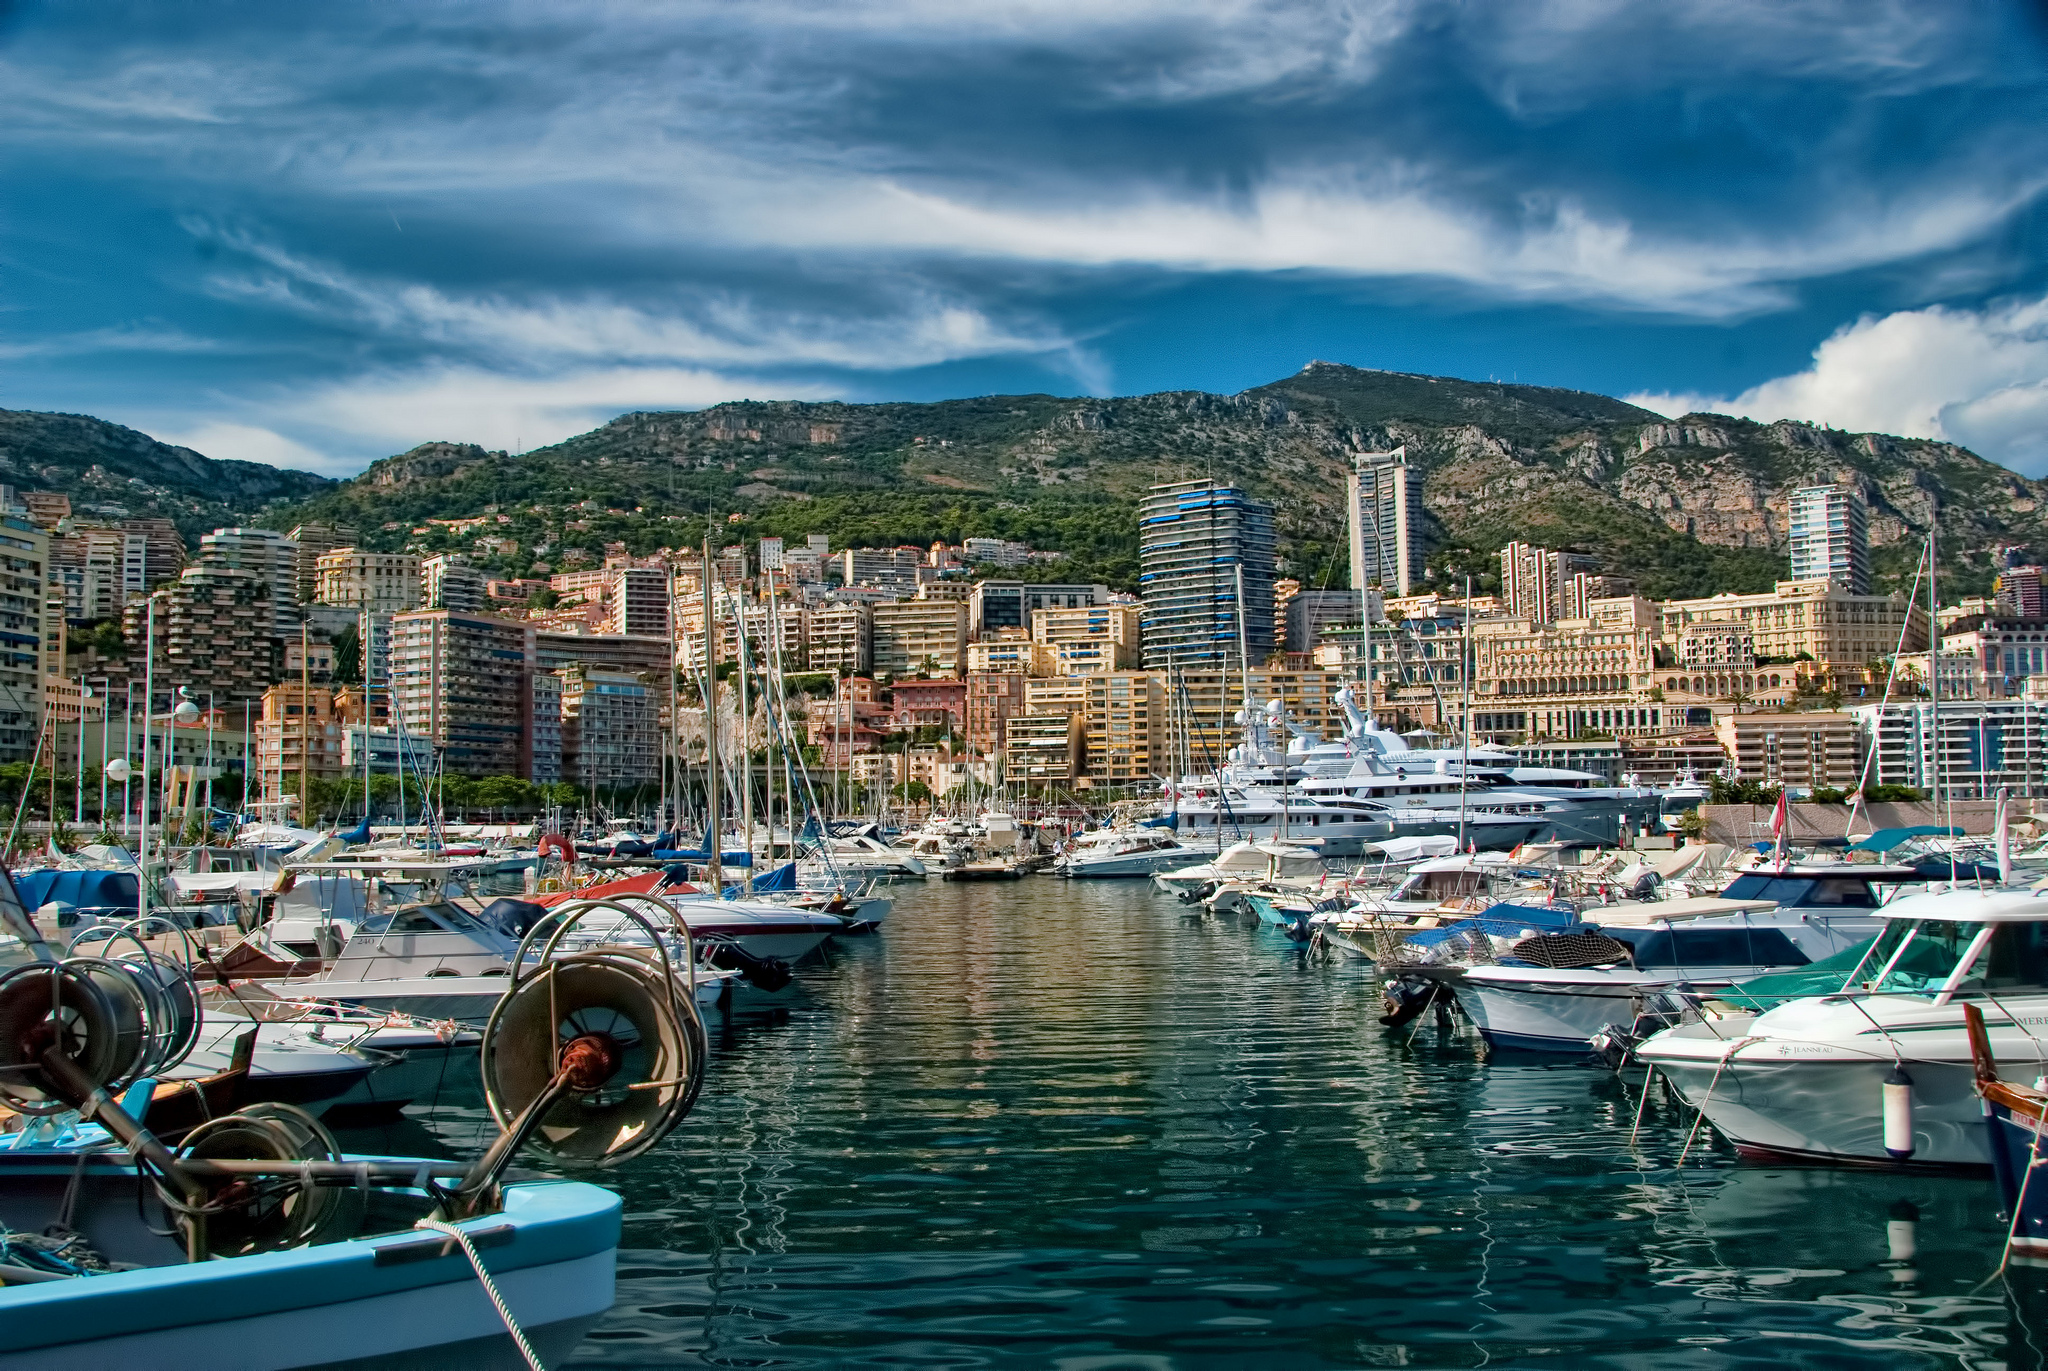 Image of Monaco via Trish Hartman on Flickr